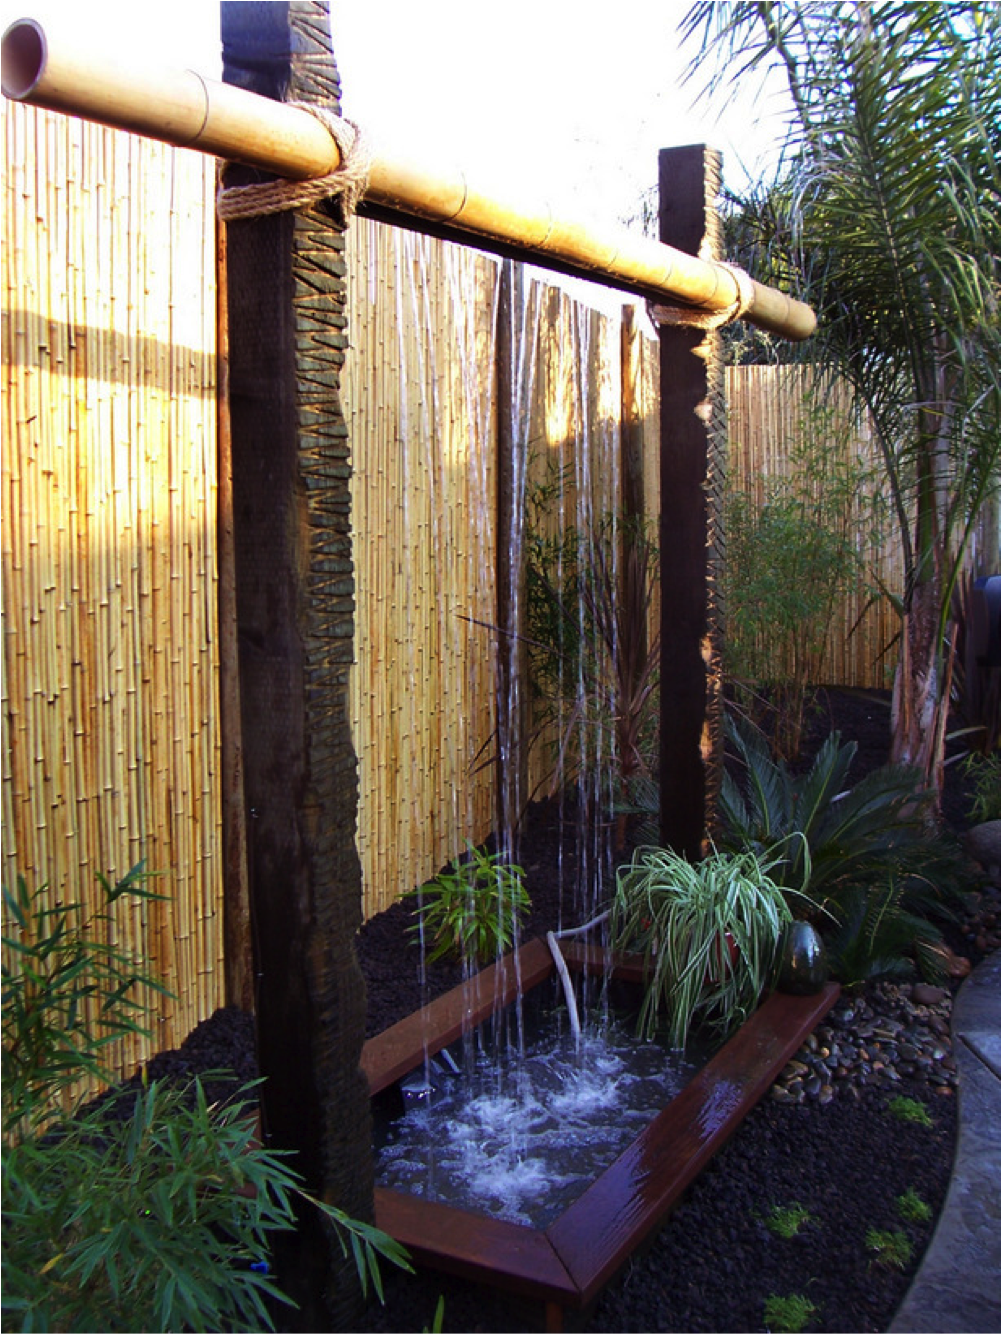 Diy patio water wall the interior frugalista diy patio water wall - Outdoor Water Features Home Improvement Diy Network Would Much Rather Have A Water Feature Like This Than A Pond For The Backyard